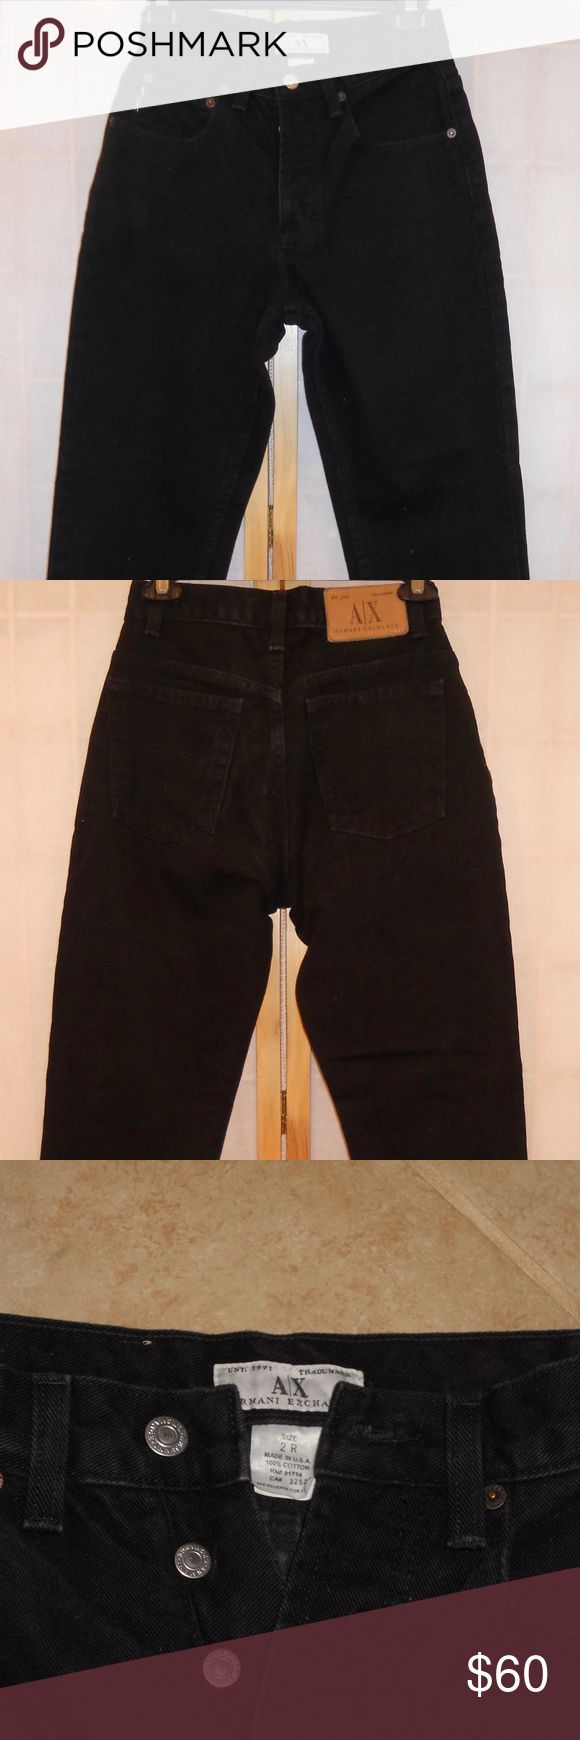 """Black A/X Armani Exchange Mom Jeans Size 2R A/X Armani Exchange 2R black jeans. Made in the USA. 100% cotton. There's no zipper for closure but 4 buttons instead; 5 pockets. Straight leg/boot cut, high-waisted. Waist: approx. 26"""", rise: 10 ½"""", inseam: 29"""", length: 39"""", cuff width: 13"""" Super stylish and versatile pair of black jeans! These go great with any top or shoes! Used – not jet black like as new but no tears, frays, etc. A/X Armani Exchange Jeans Straight Leg"""